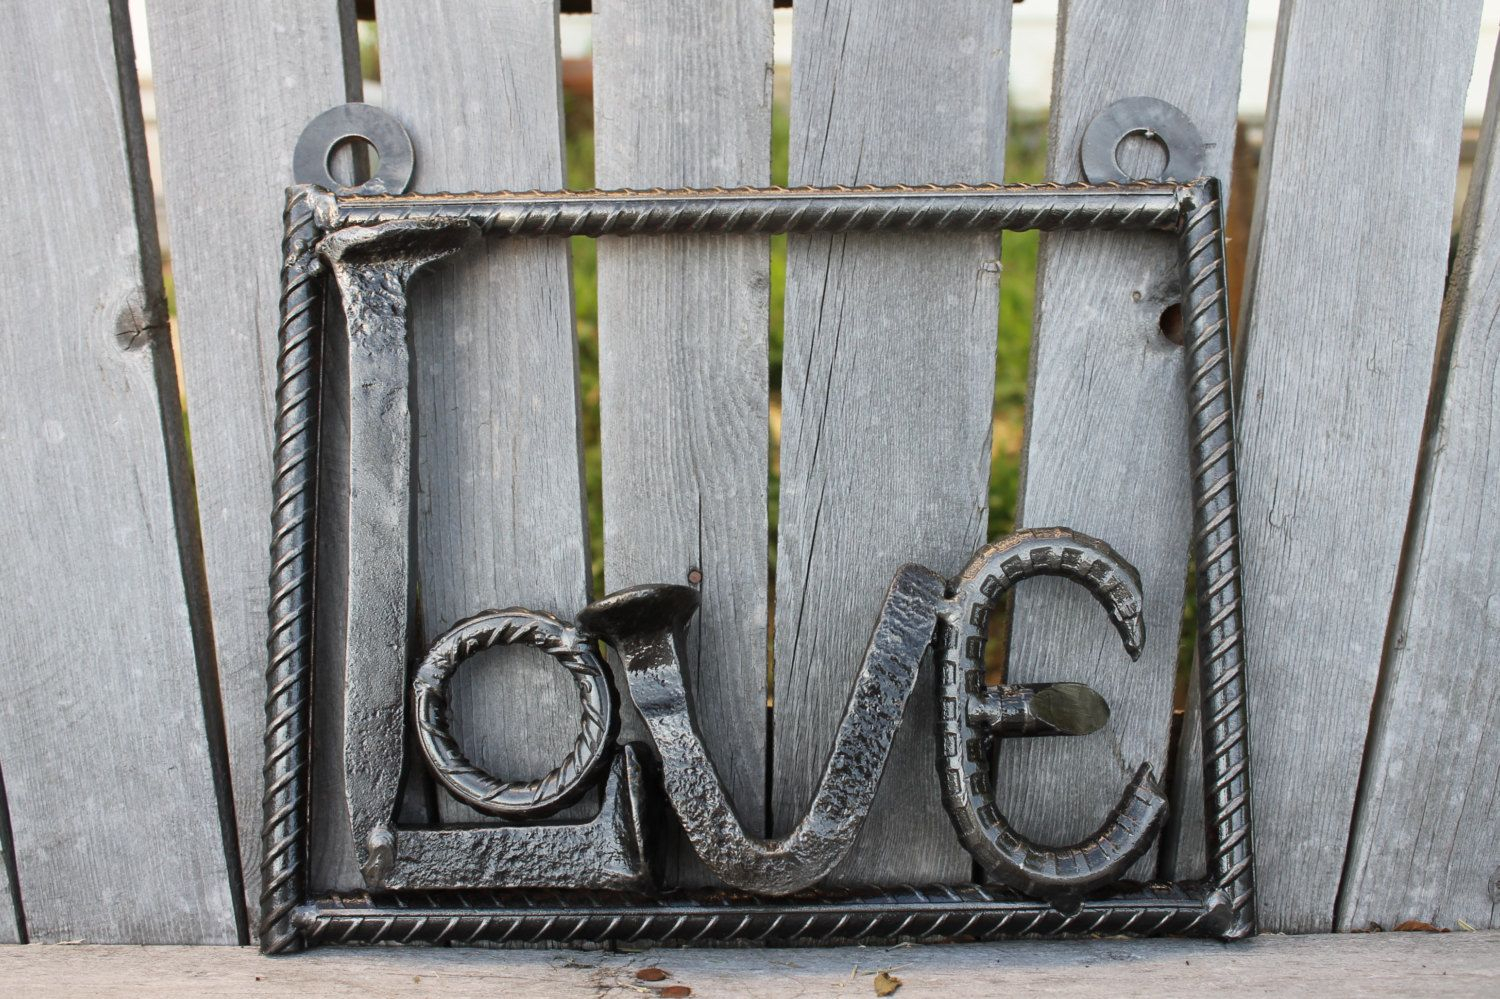 Railroad Spike, Rebar Love Sign | Metal Work | Metal Tree within Coffee Sign With Rebar Wall Decor (Image 14 of 30)